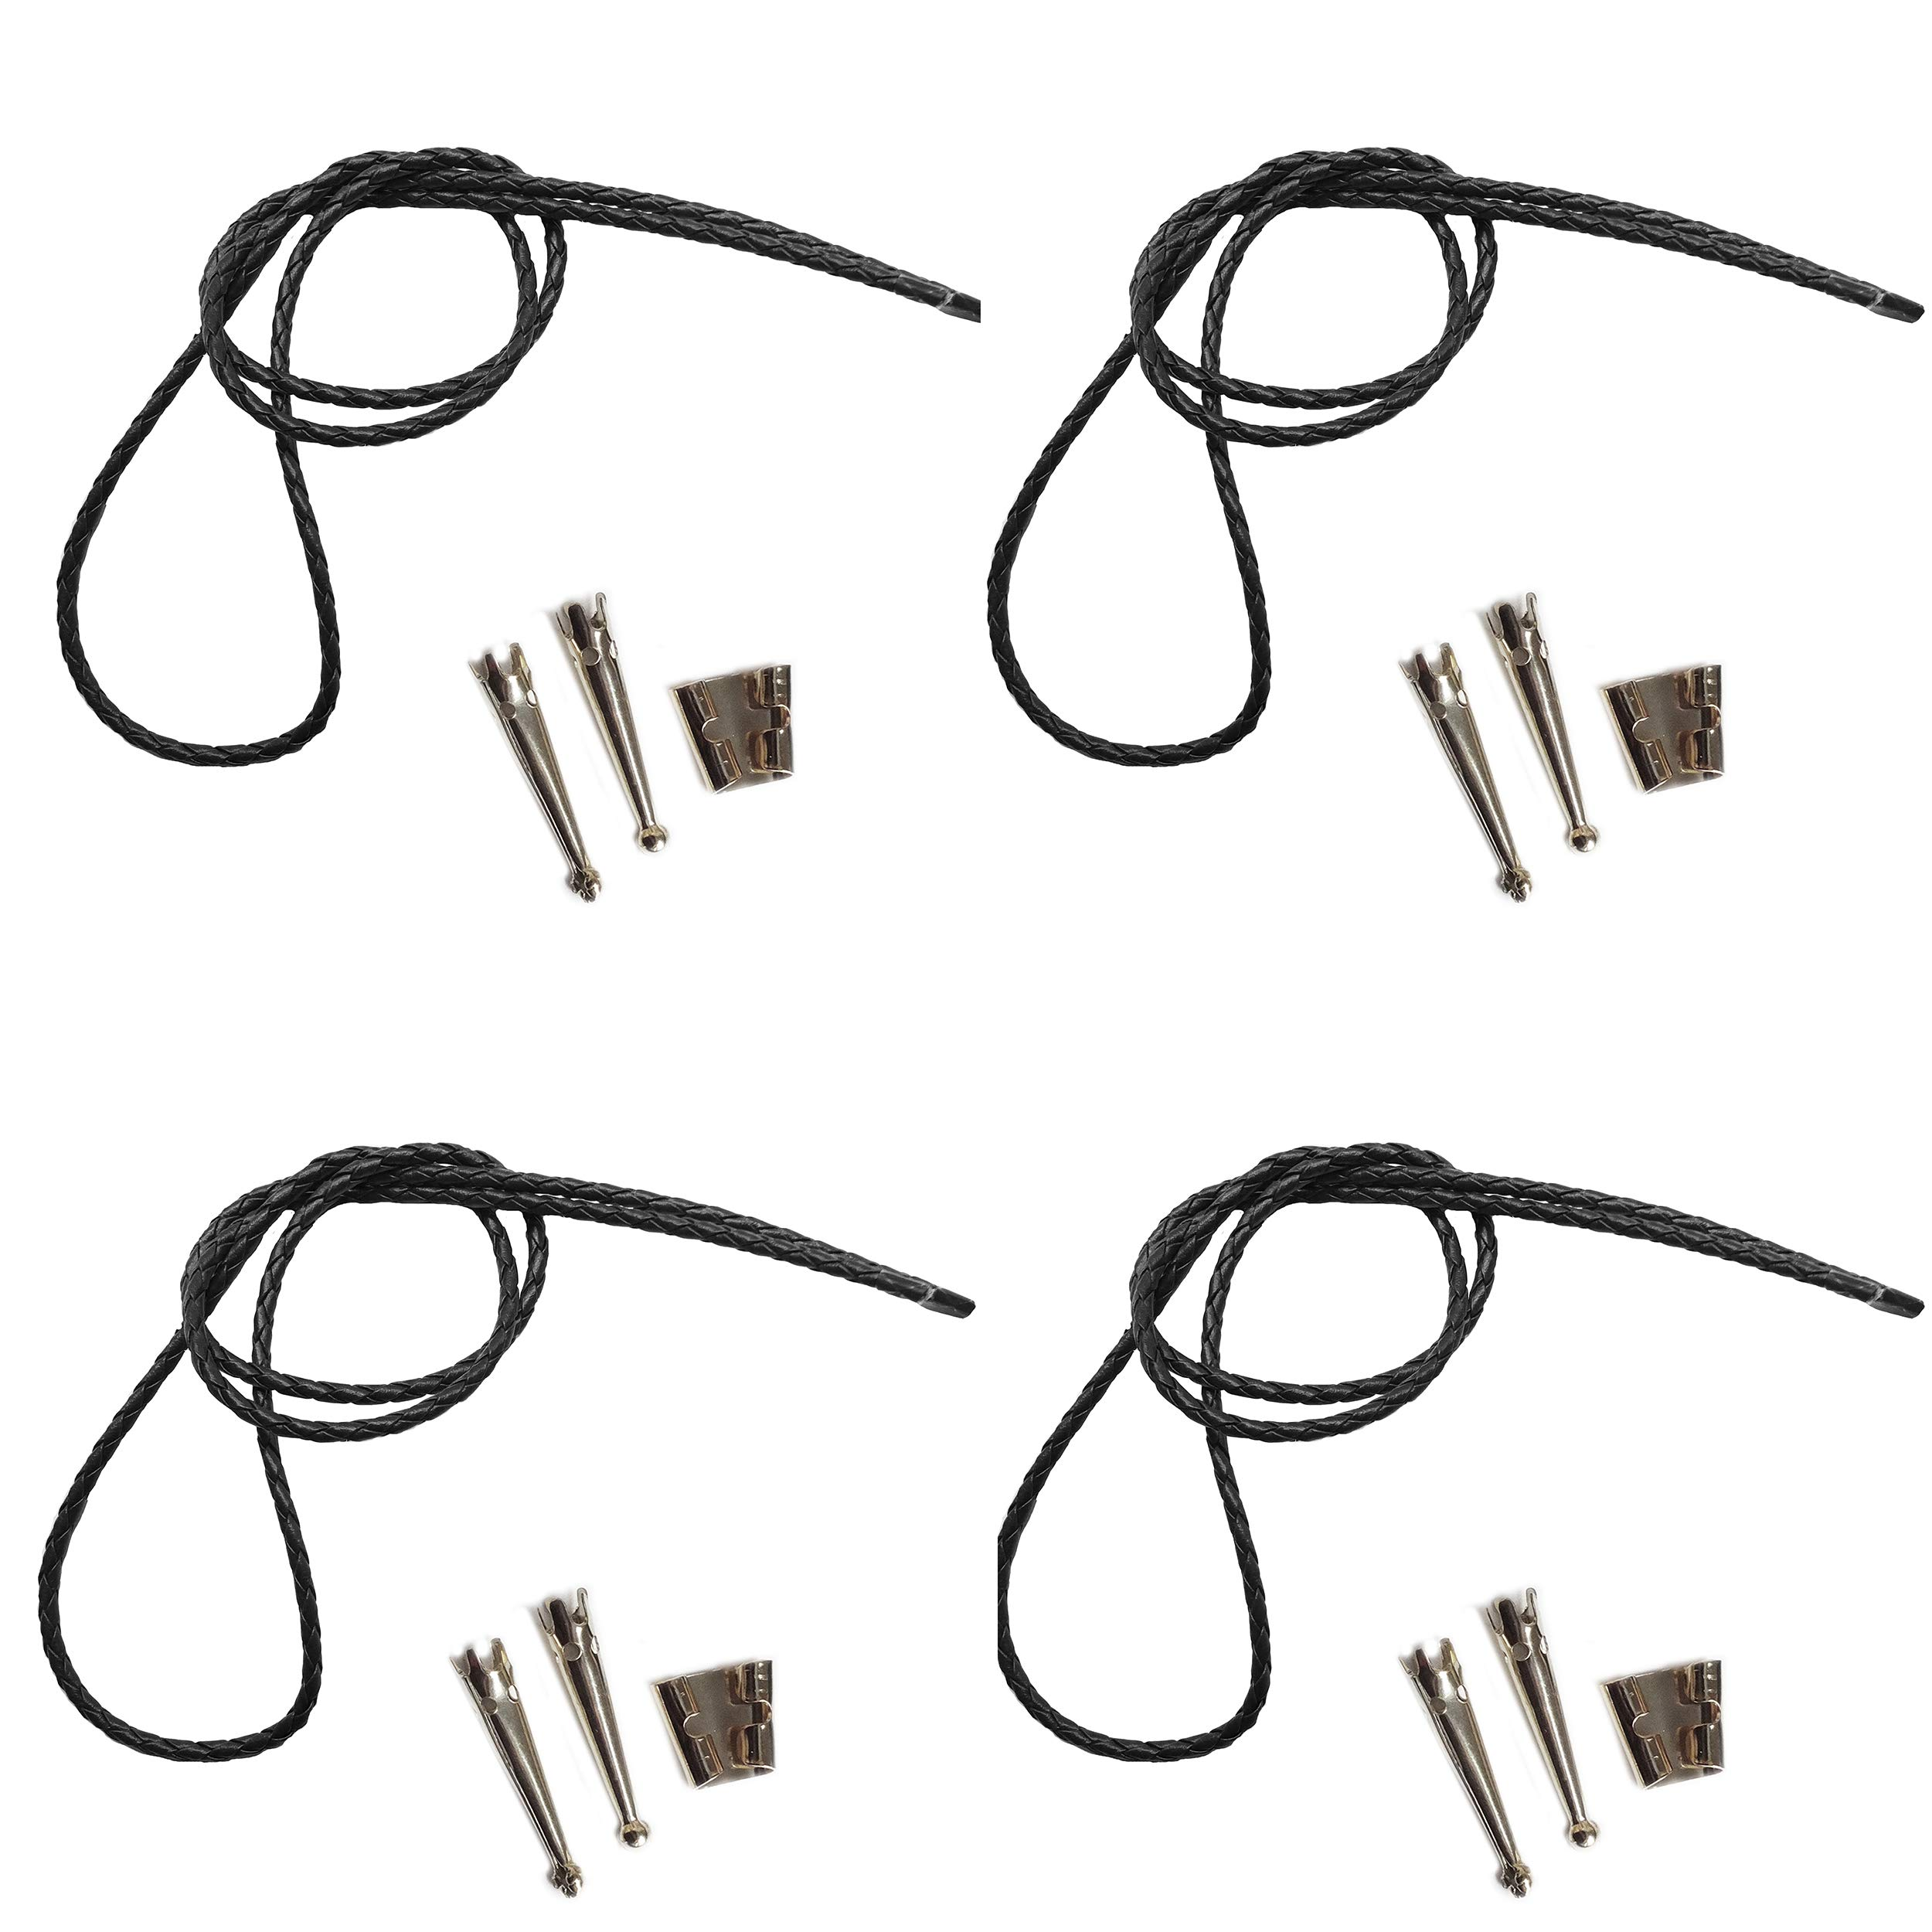 Blank Bolo String Tie Parts Kit Standard Slide Smooth Tips Black Vinyl Braid DIY Silver Tone Supplies for 4 Ties by BeadExplosion